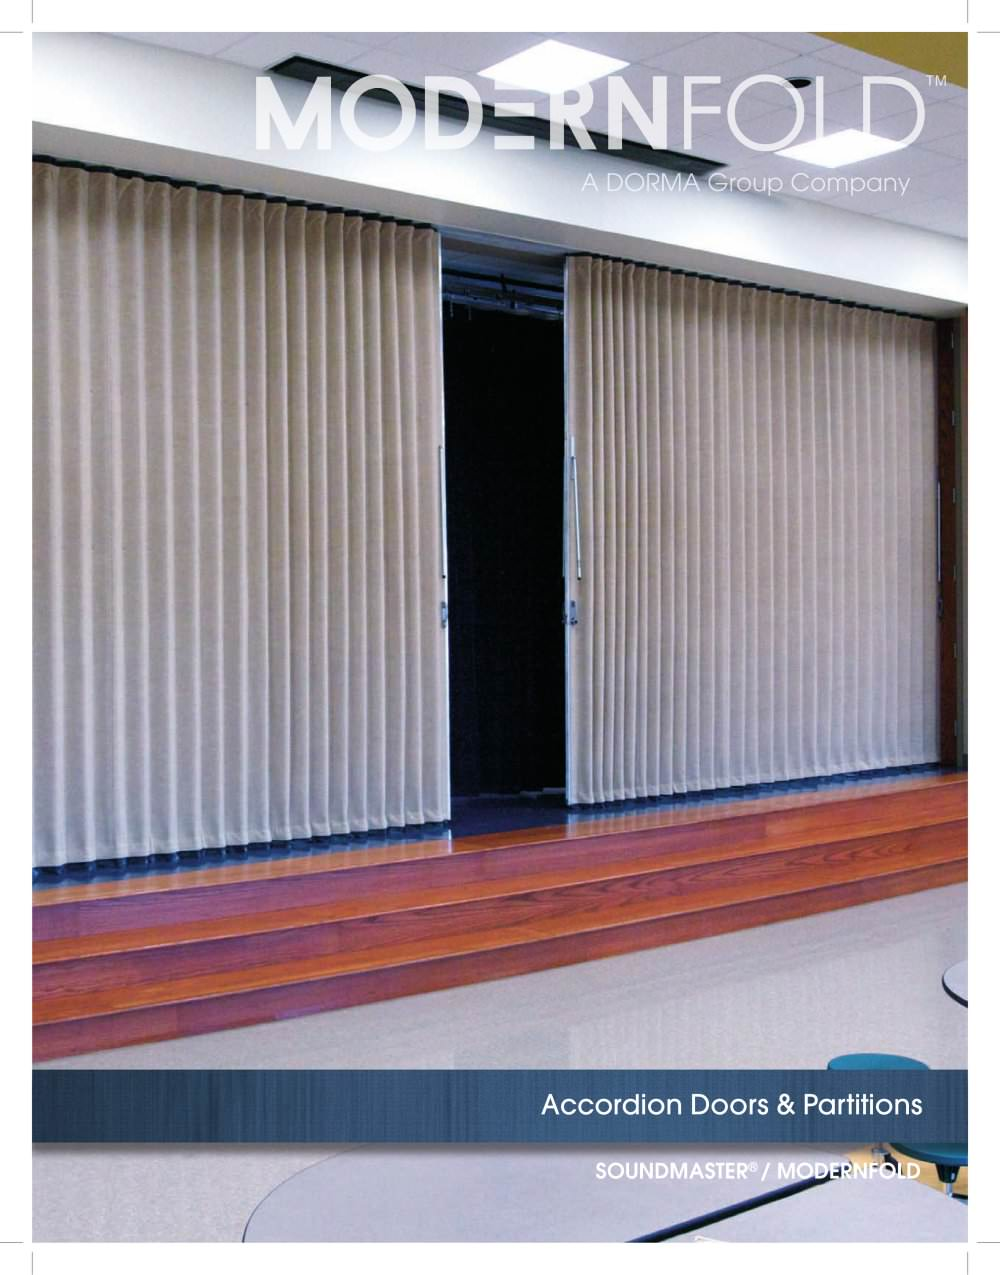 Soundmaster® / Modernfold® Accordion Doors u0026 Partitions - 1 / 8 Pages & Soundmaster® / Modernfold® Accordion Doors u0026 Partitions ... pezcame.com